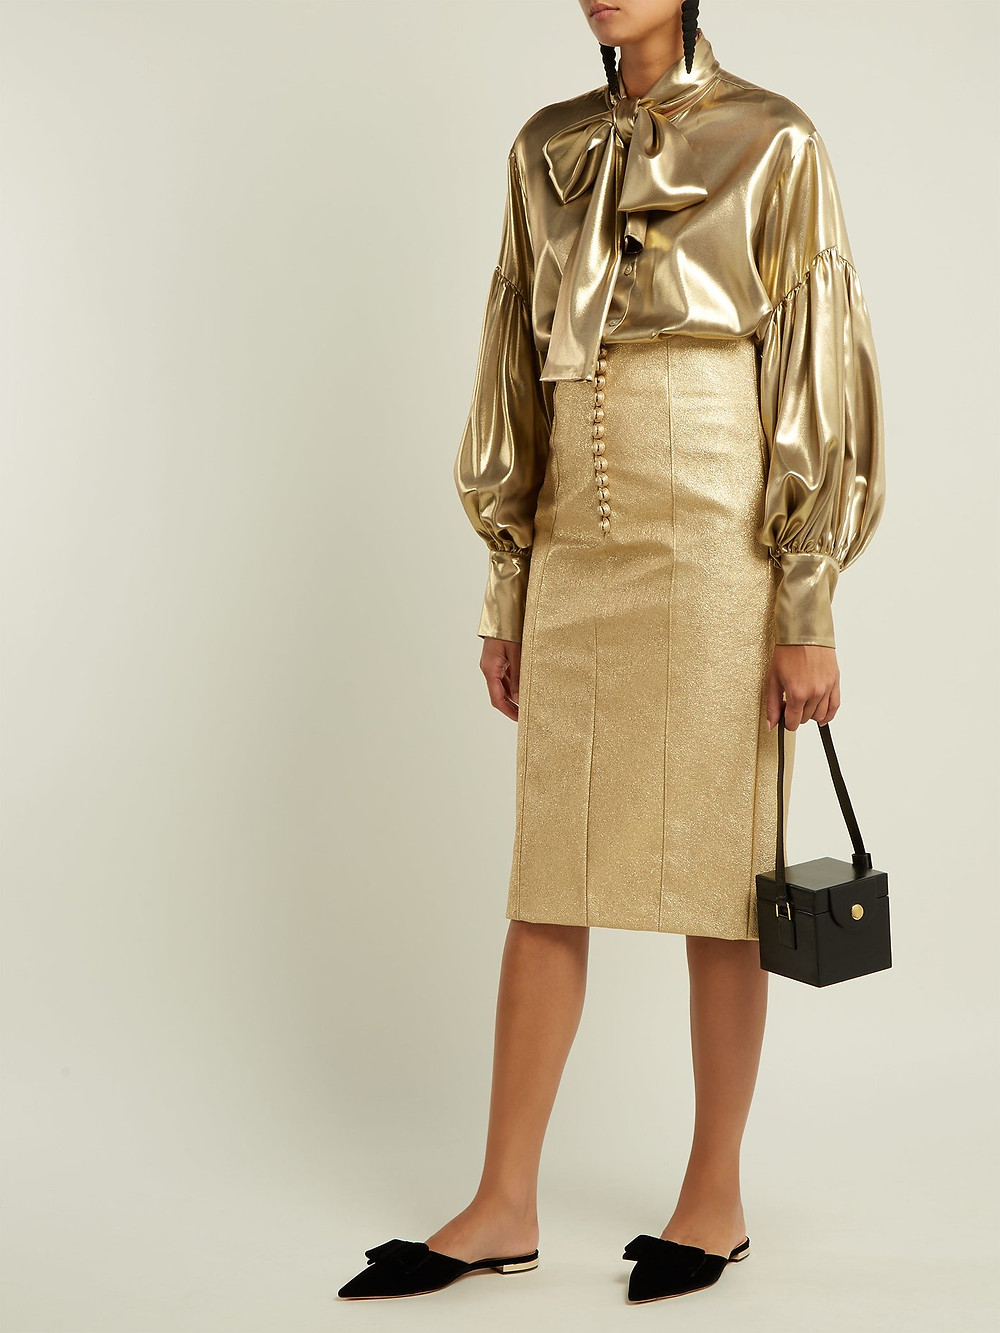 Hillier Bartley Metallic buttoned faux-leather pencil skirt $793